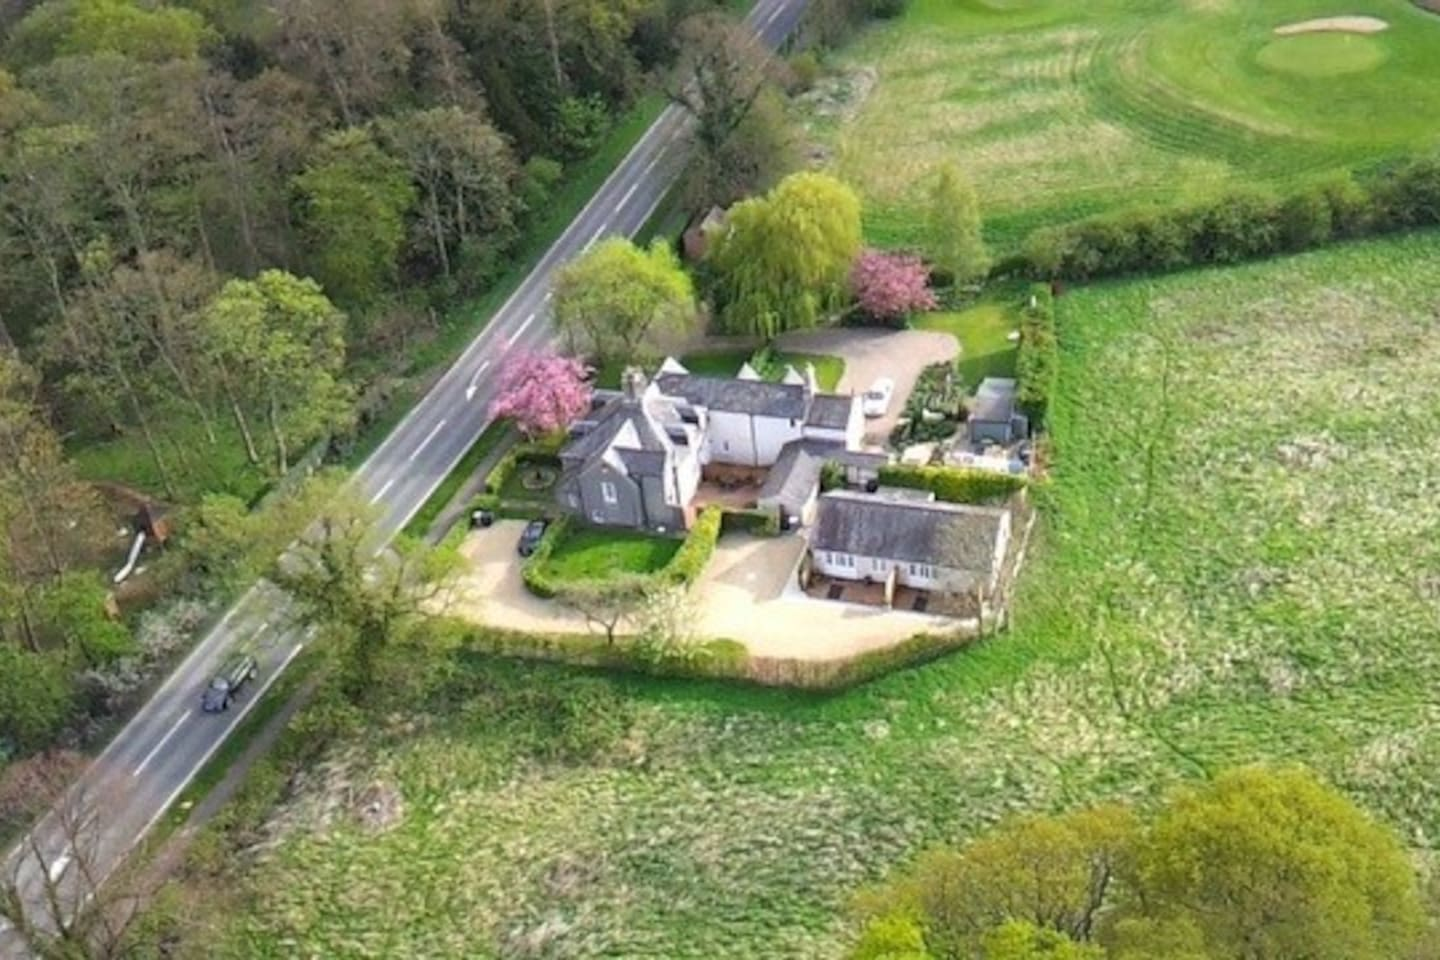 You'll find Waterloo Studios at the rear of Waterloo Cottages.  This should help with finding our location.  Check out the rural setting ... yet just a short walk to Golf, 5 Restaurants, Shopping and Leisure.